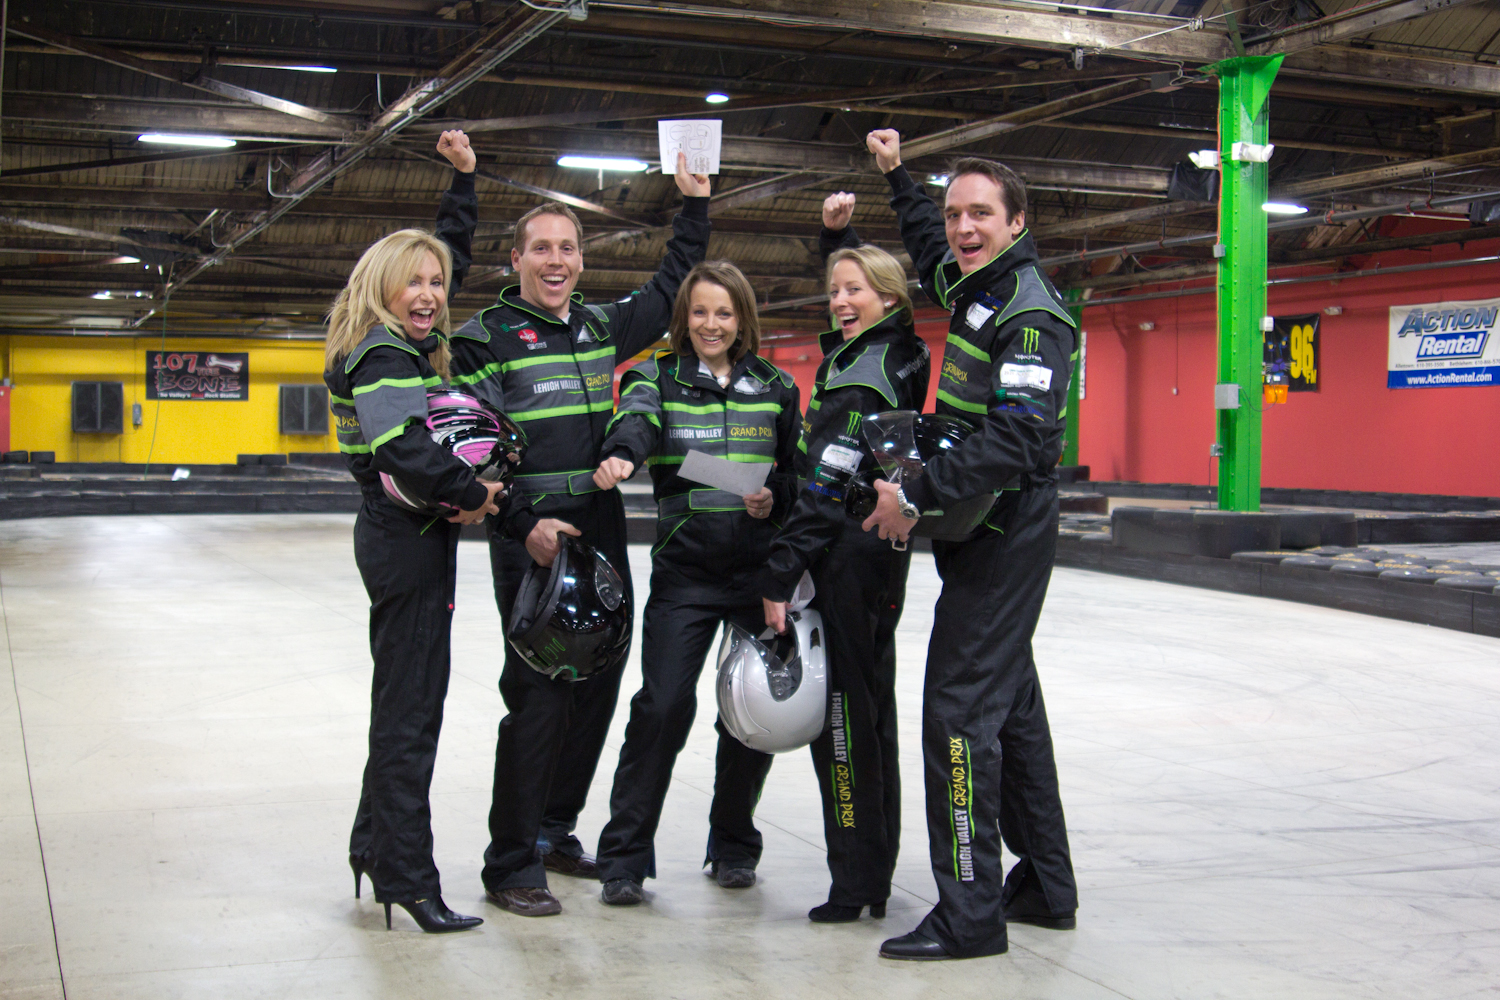 Indoor Corporate Team Building Activities Lehigh Valley Grand Prix